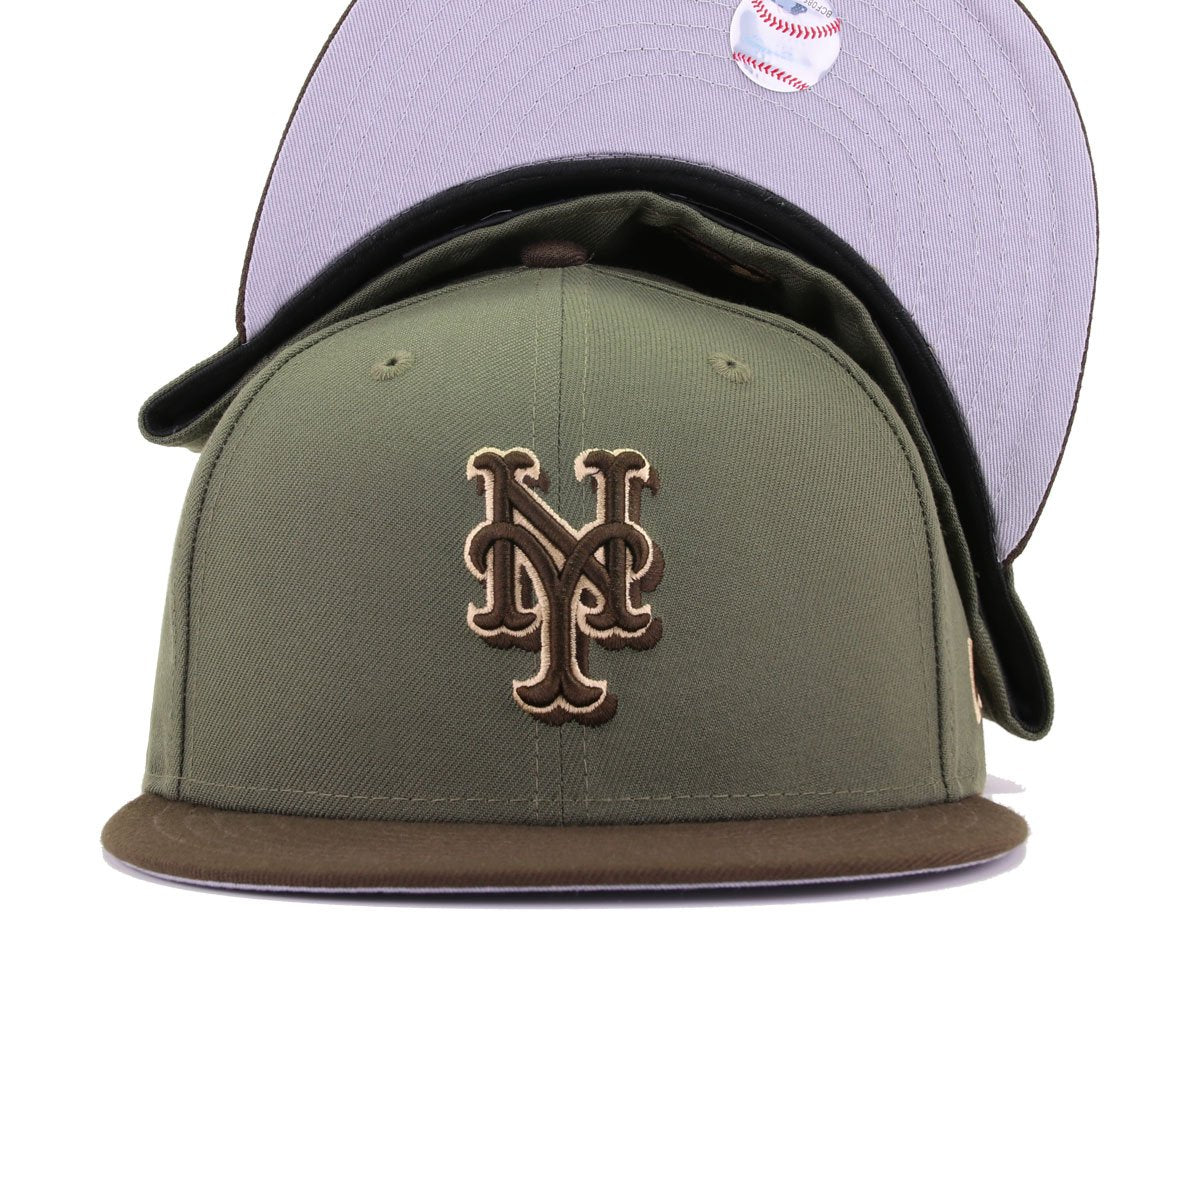 New York Mets New Olive Walnut New Era 59Fifty Fitted